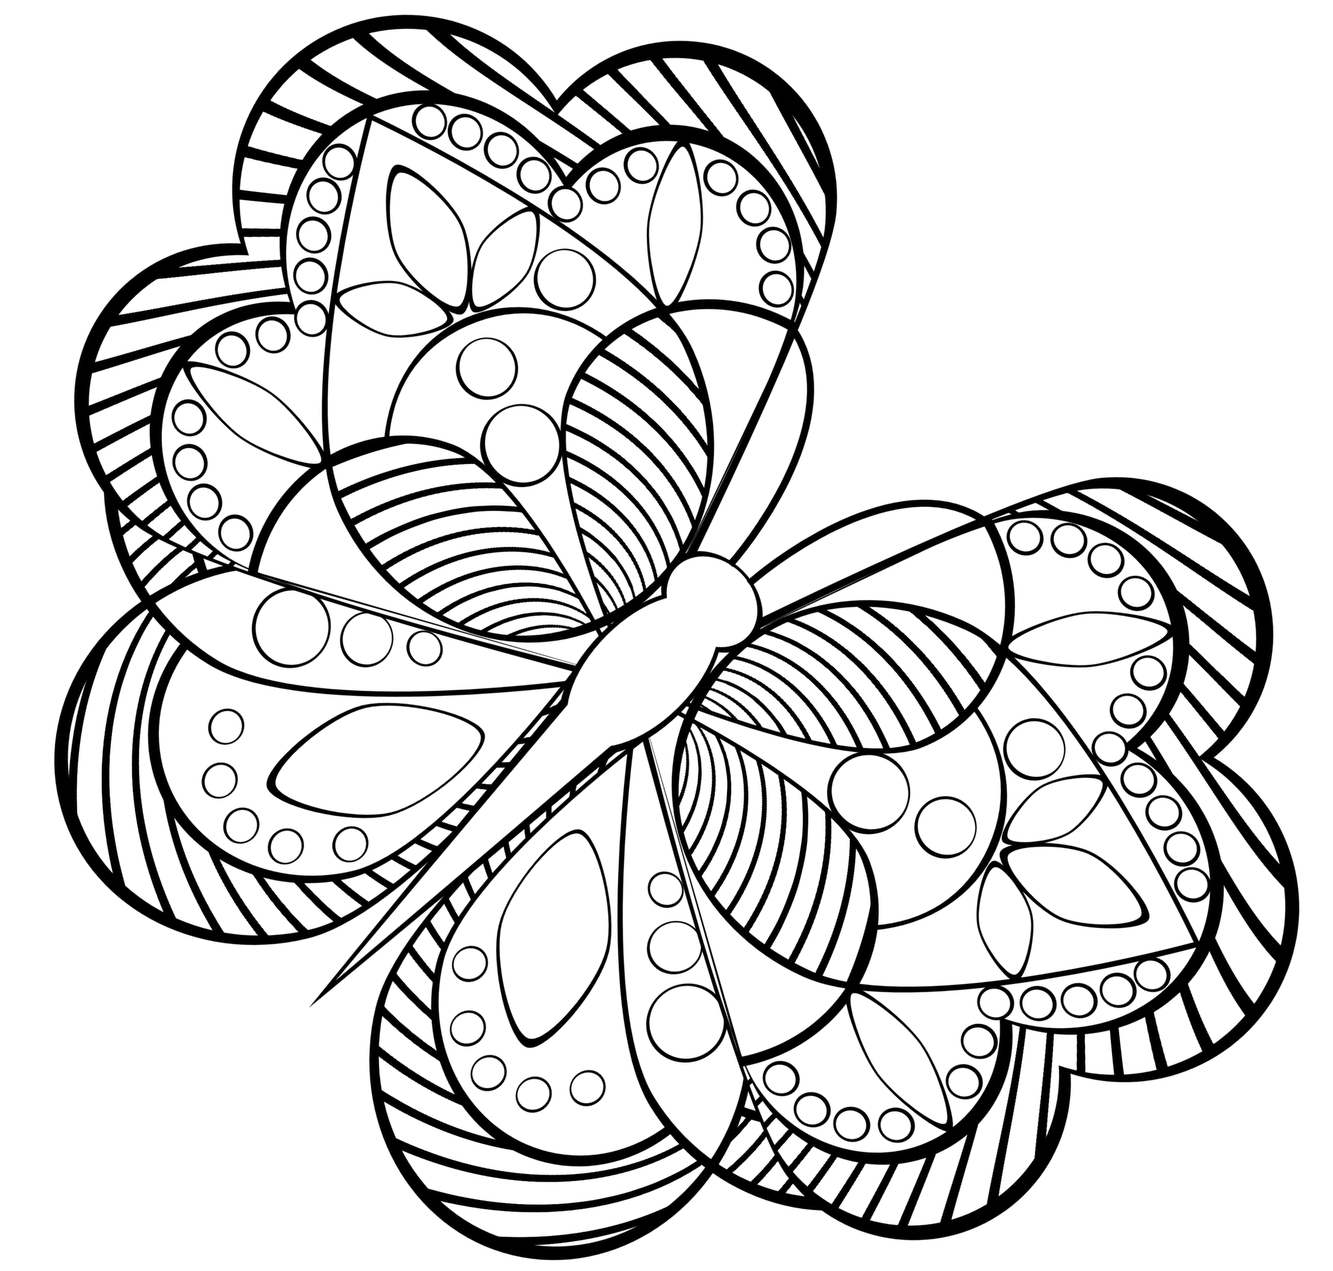 Free Coloring Pages To Color Online